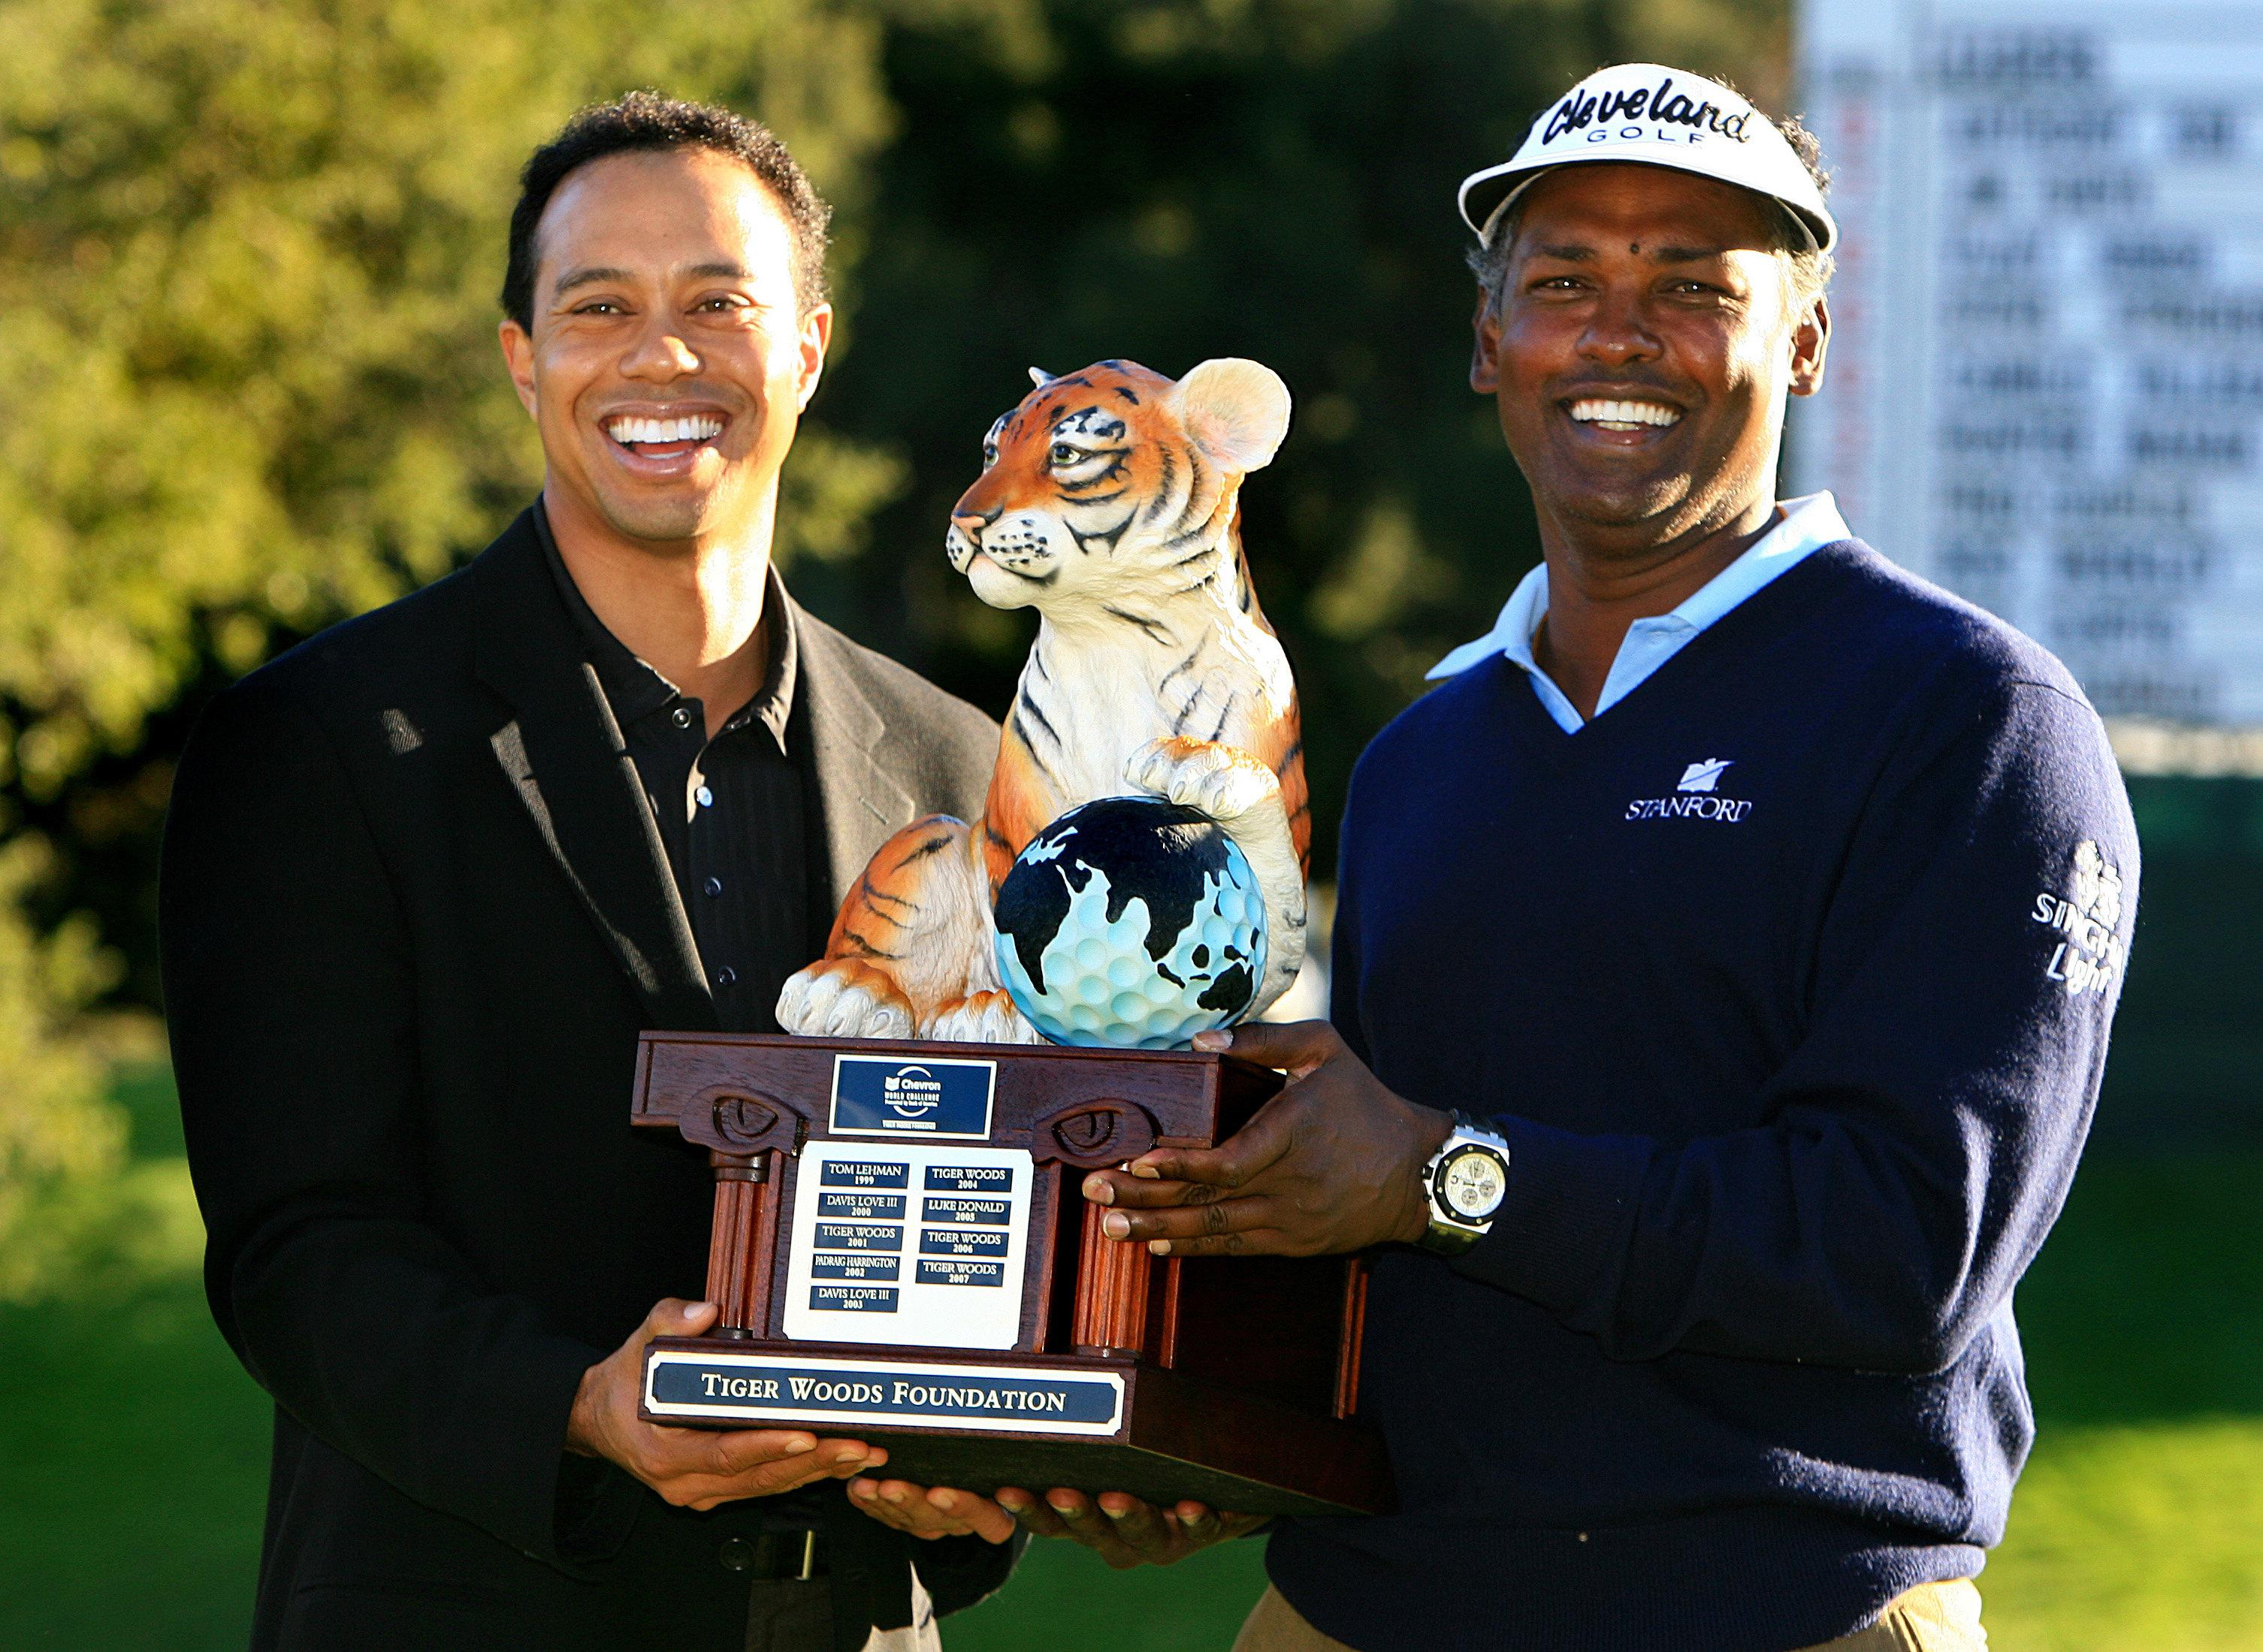 Tiger Woods hosts the Hero World Challenge where winners, like Vijay Singh here, get a tiger trophy, obviously